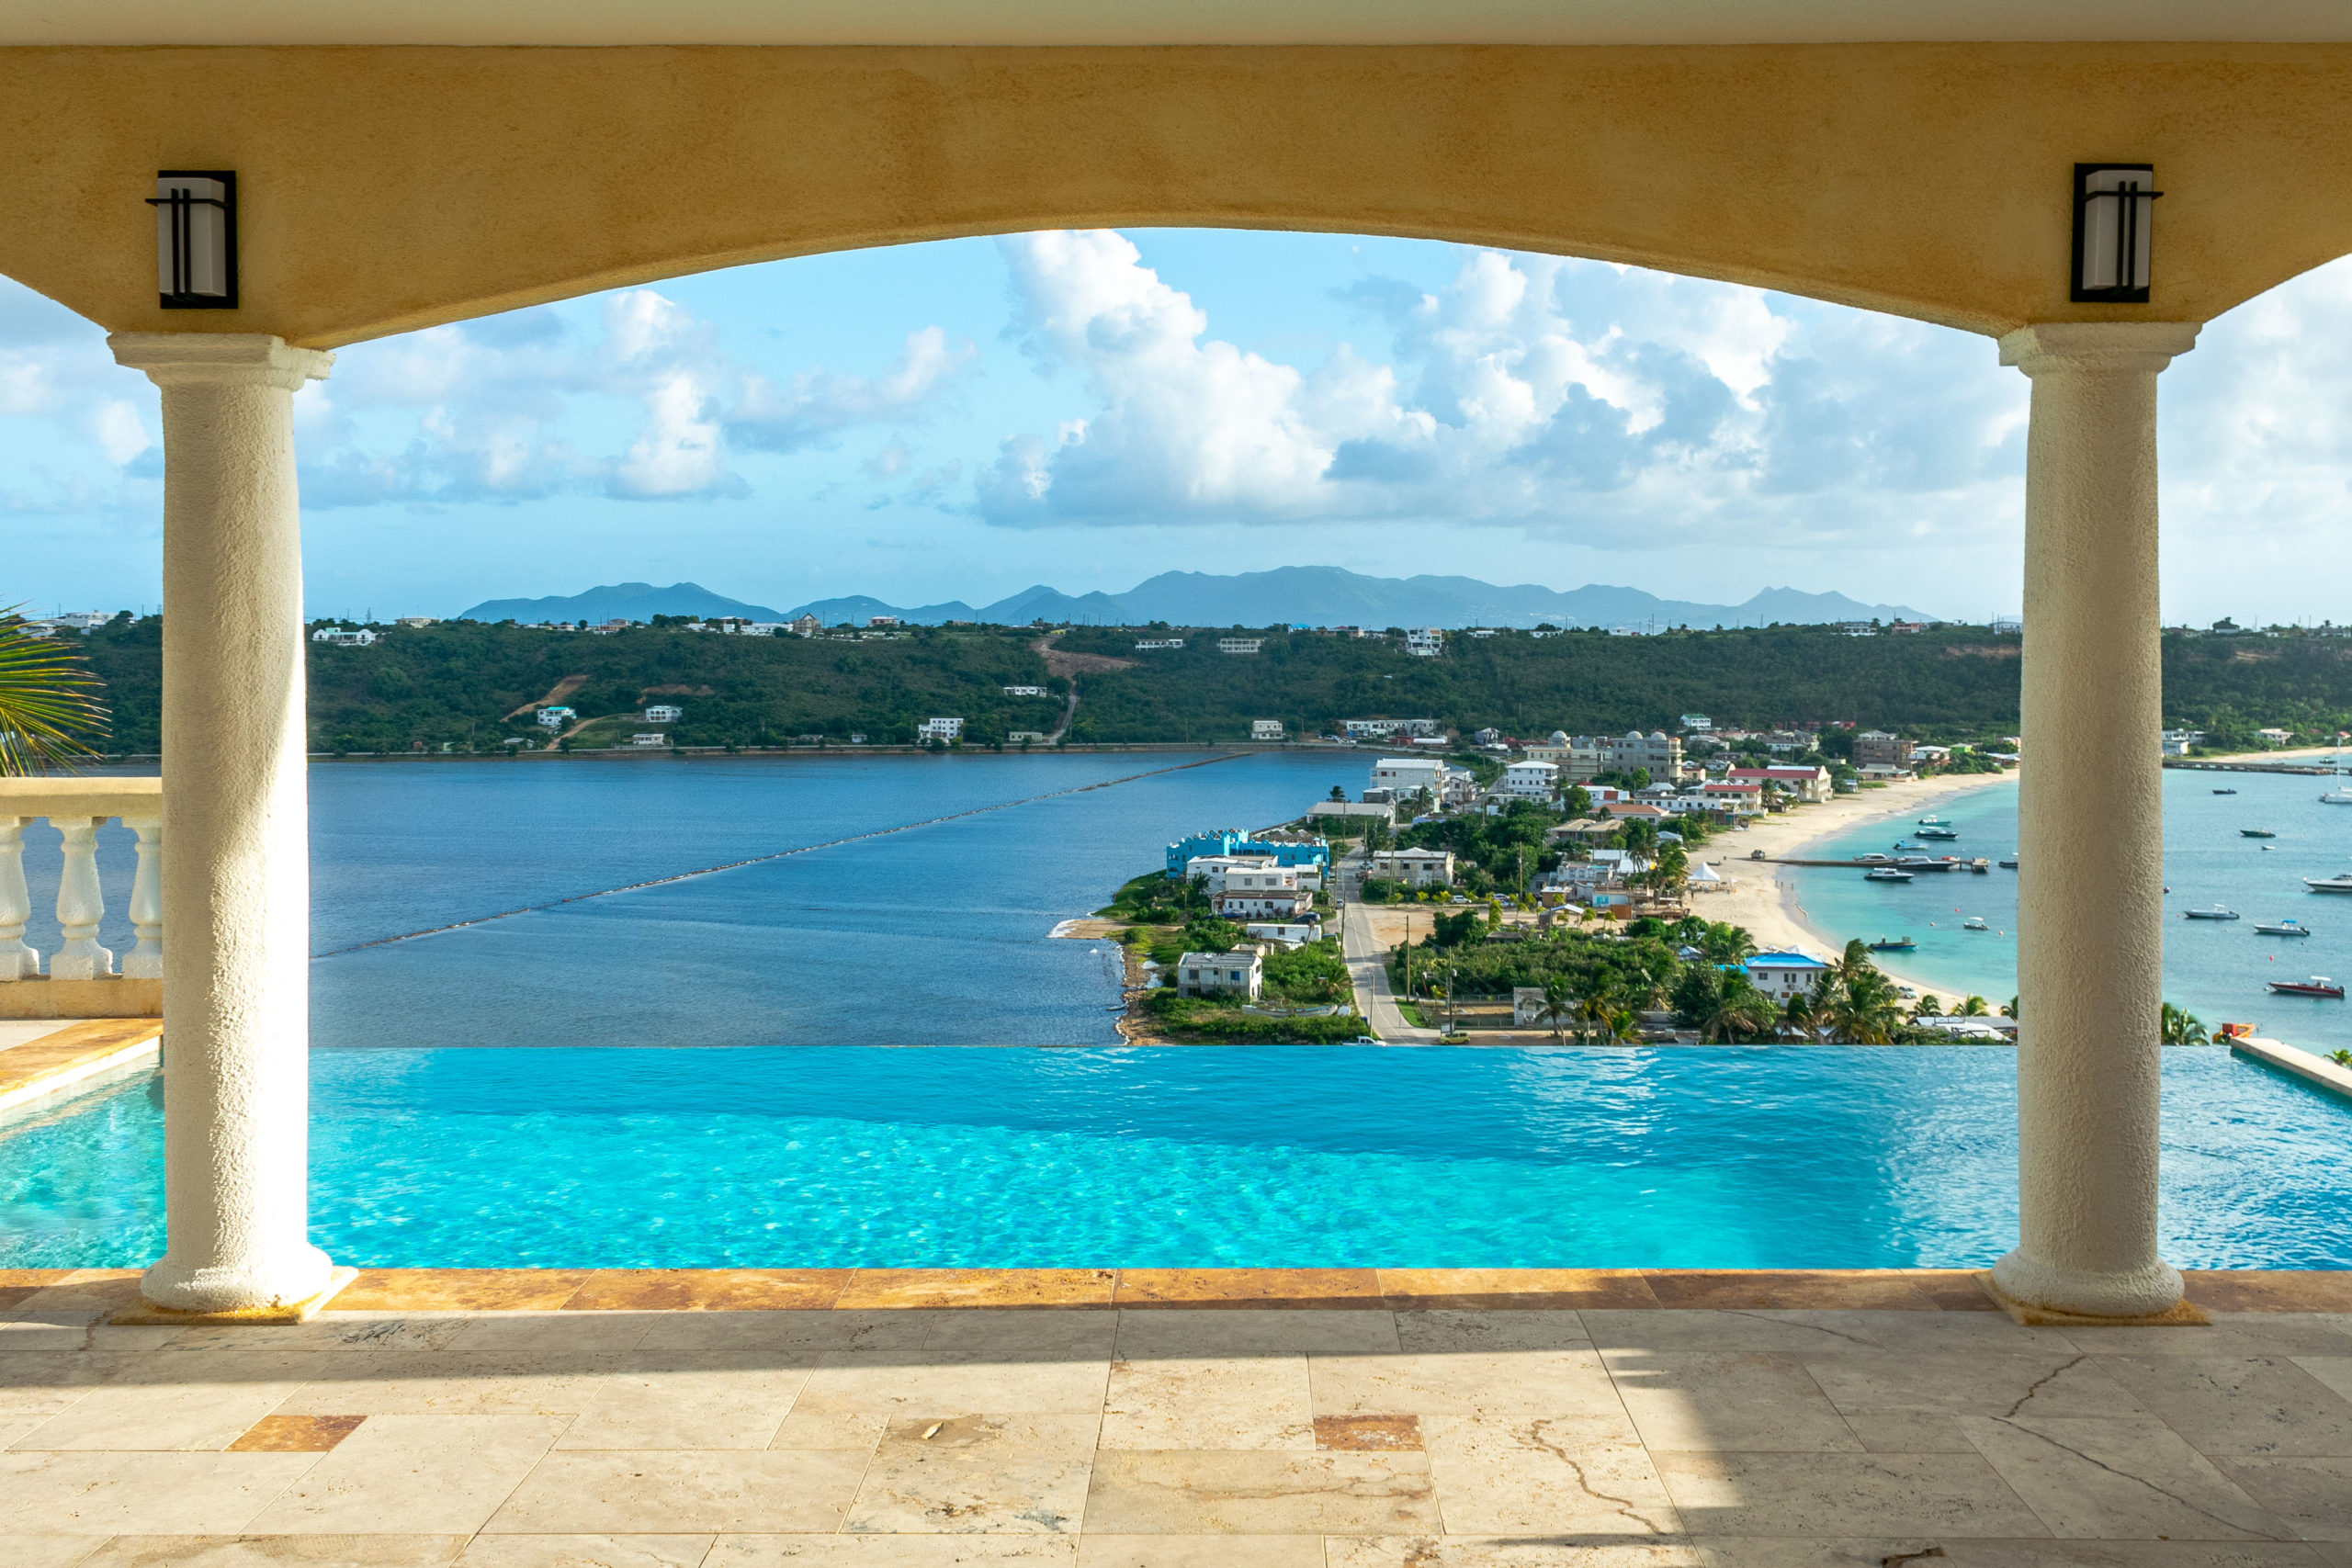 Spyglass Hill Villa, Anguilla – View With a Room